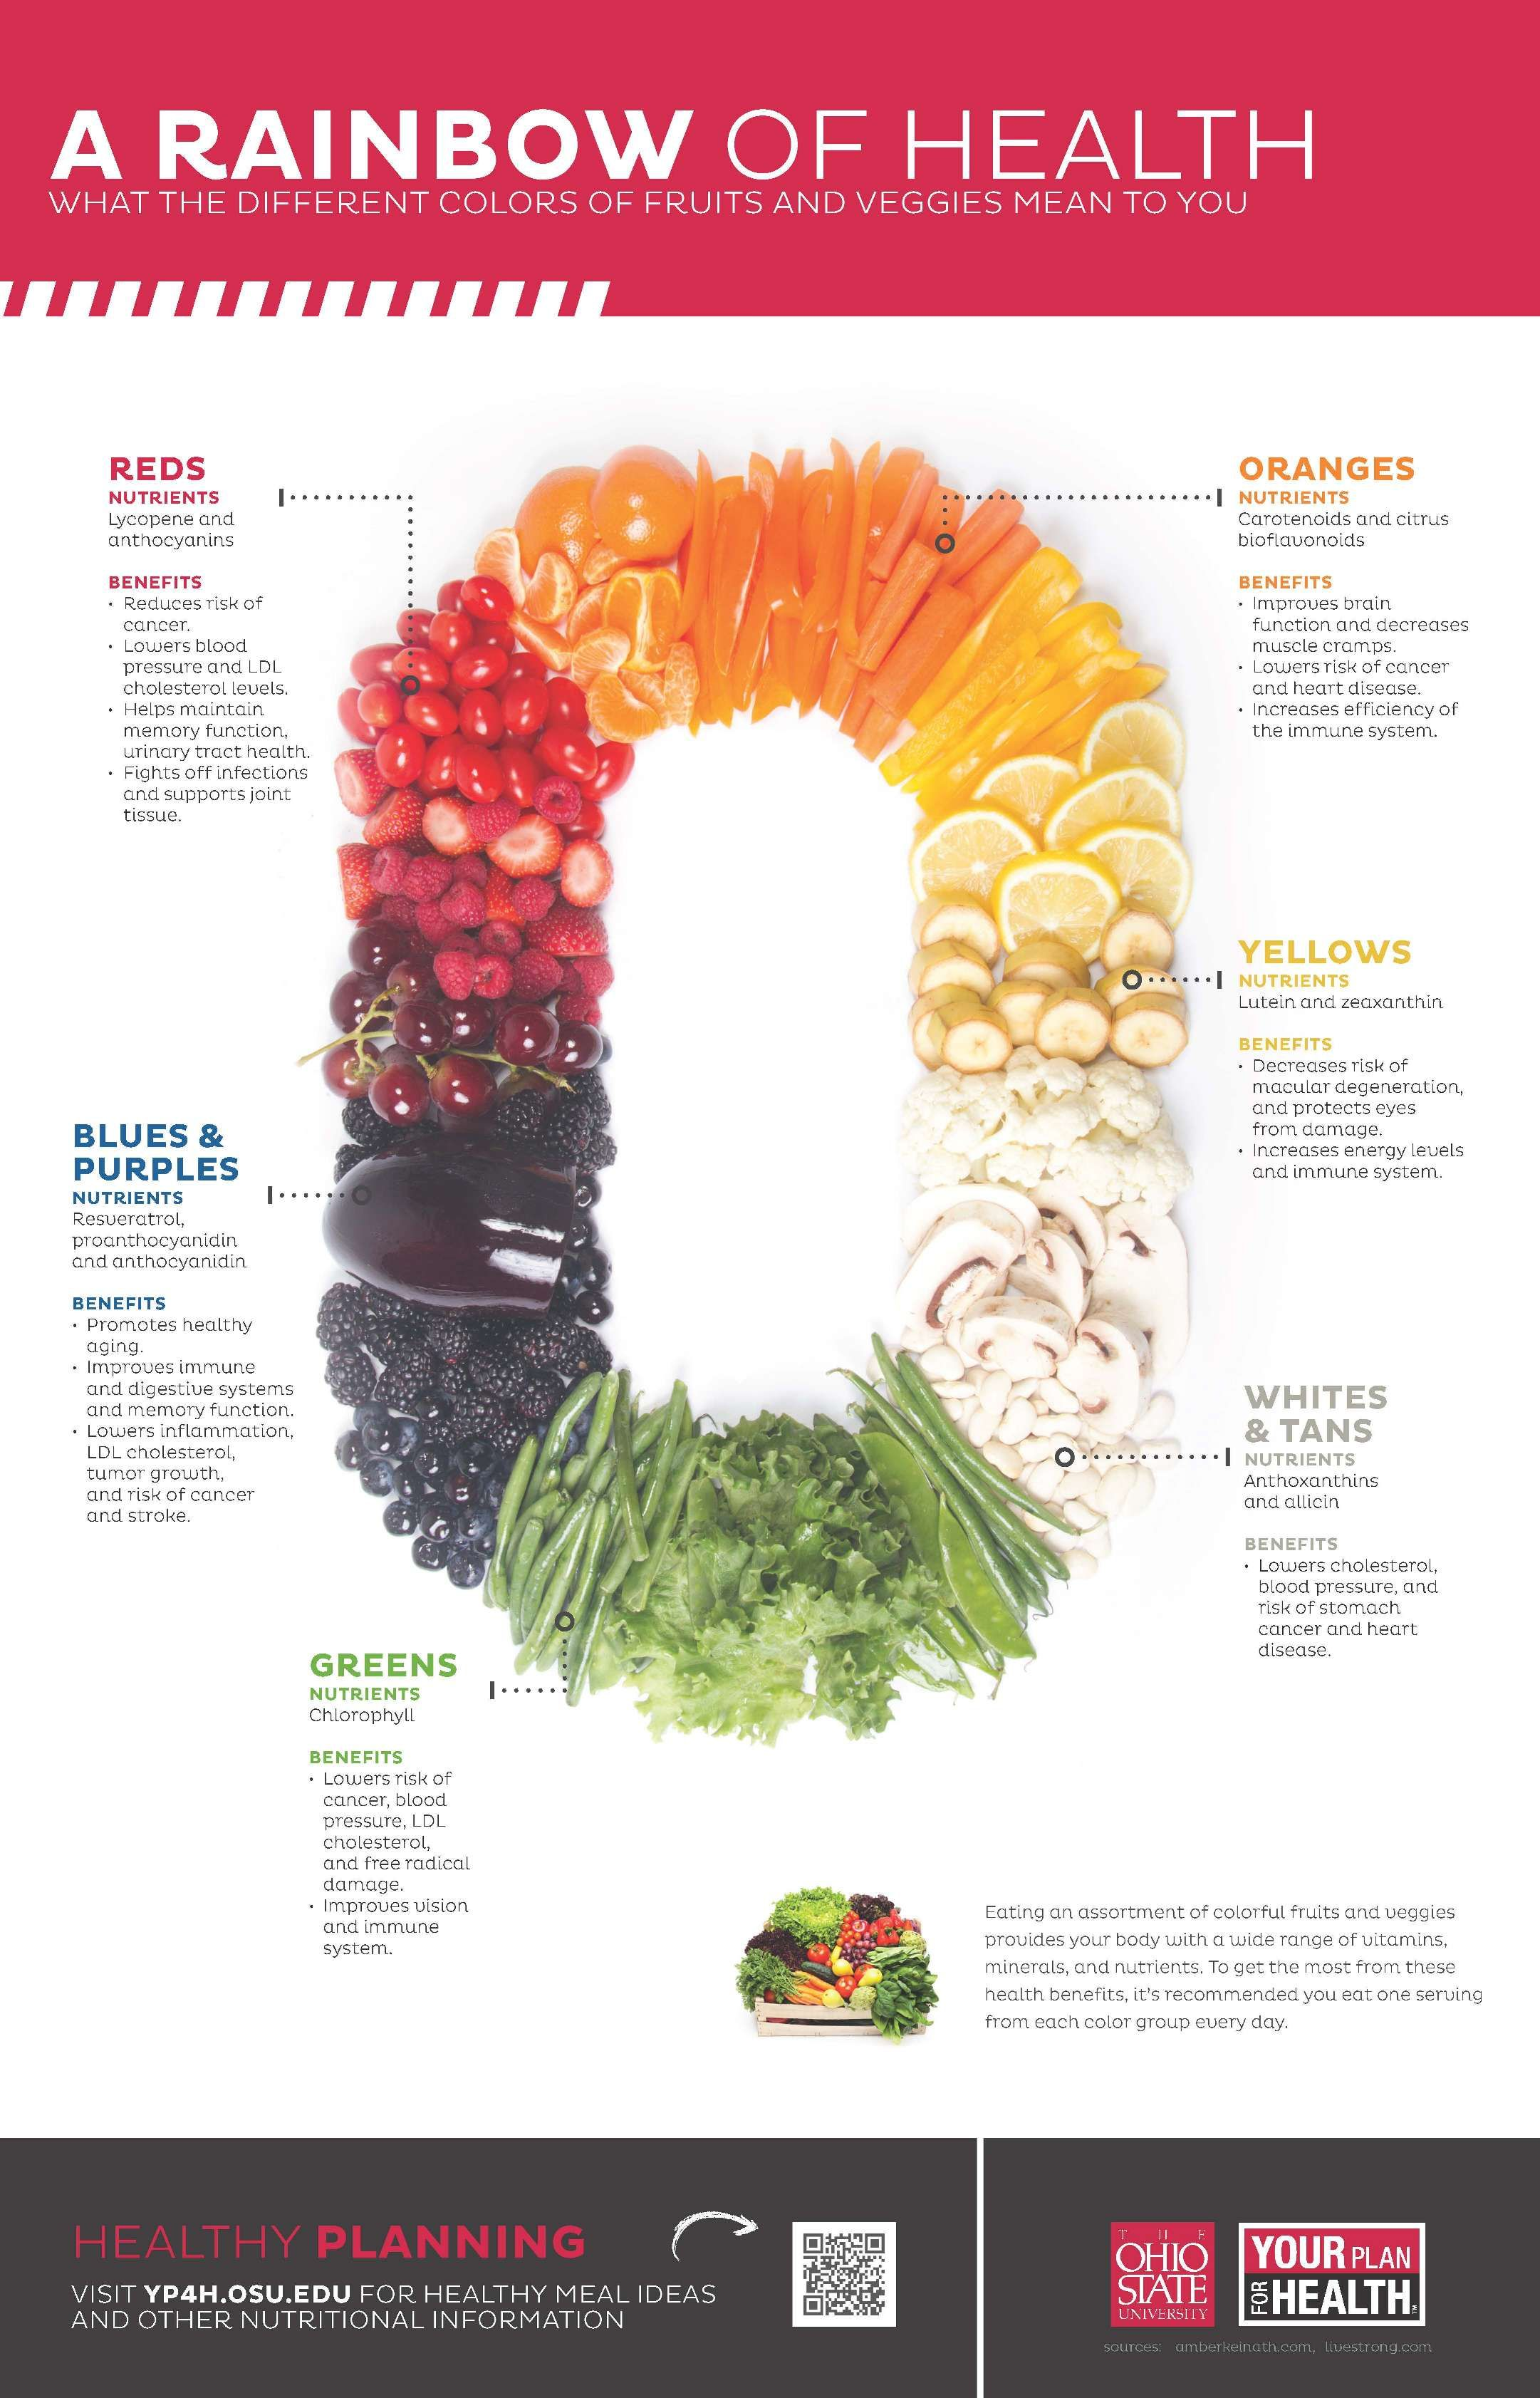 Eat a rainbow chart food colors give us different nutrients eat a rainbow chart food colors give us different nutrients vitamins minerals and value eat a range of functional foods based on color for op nvjuhfo Images